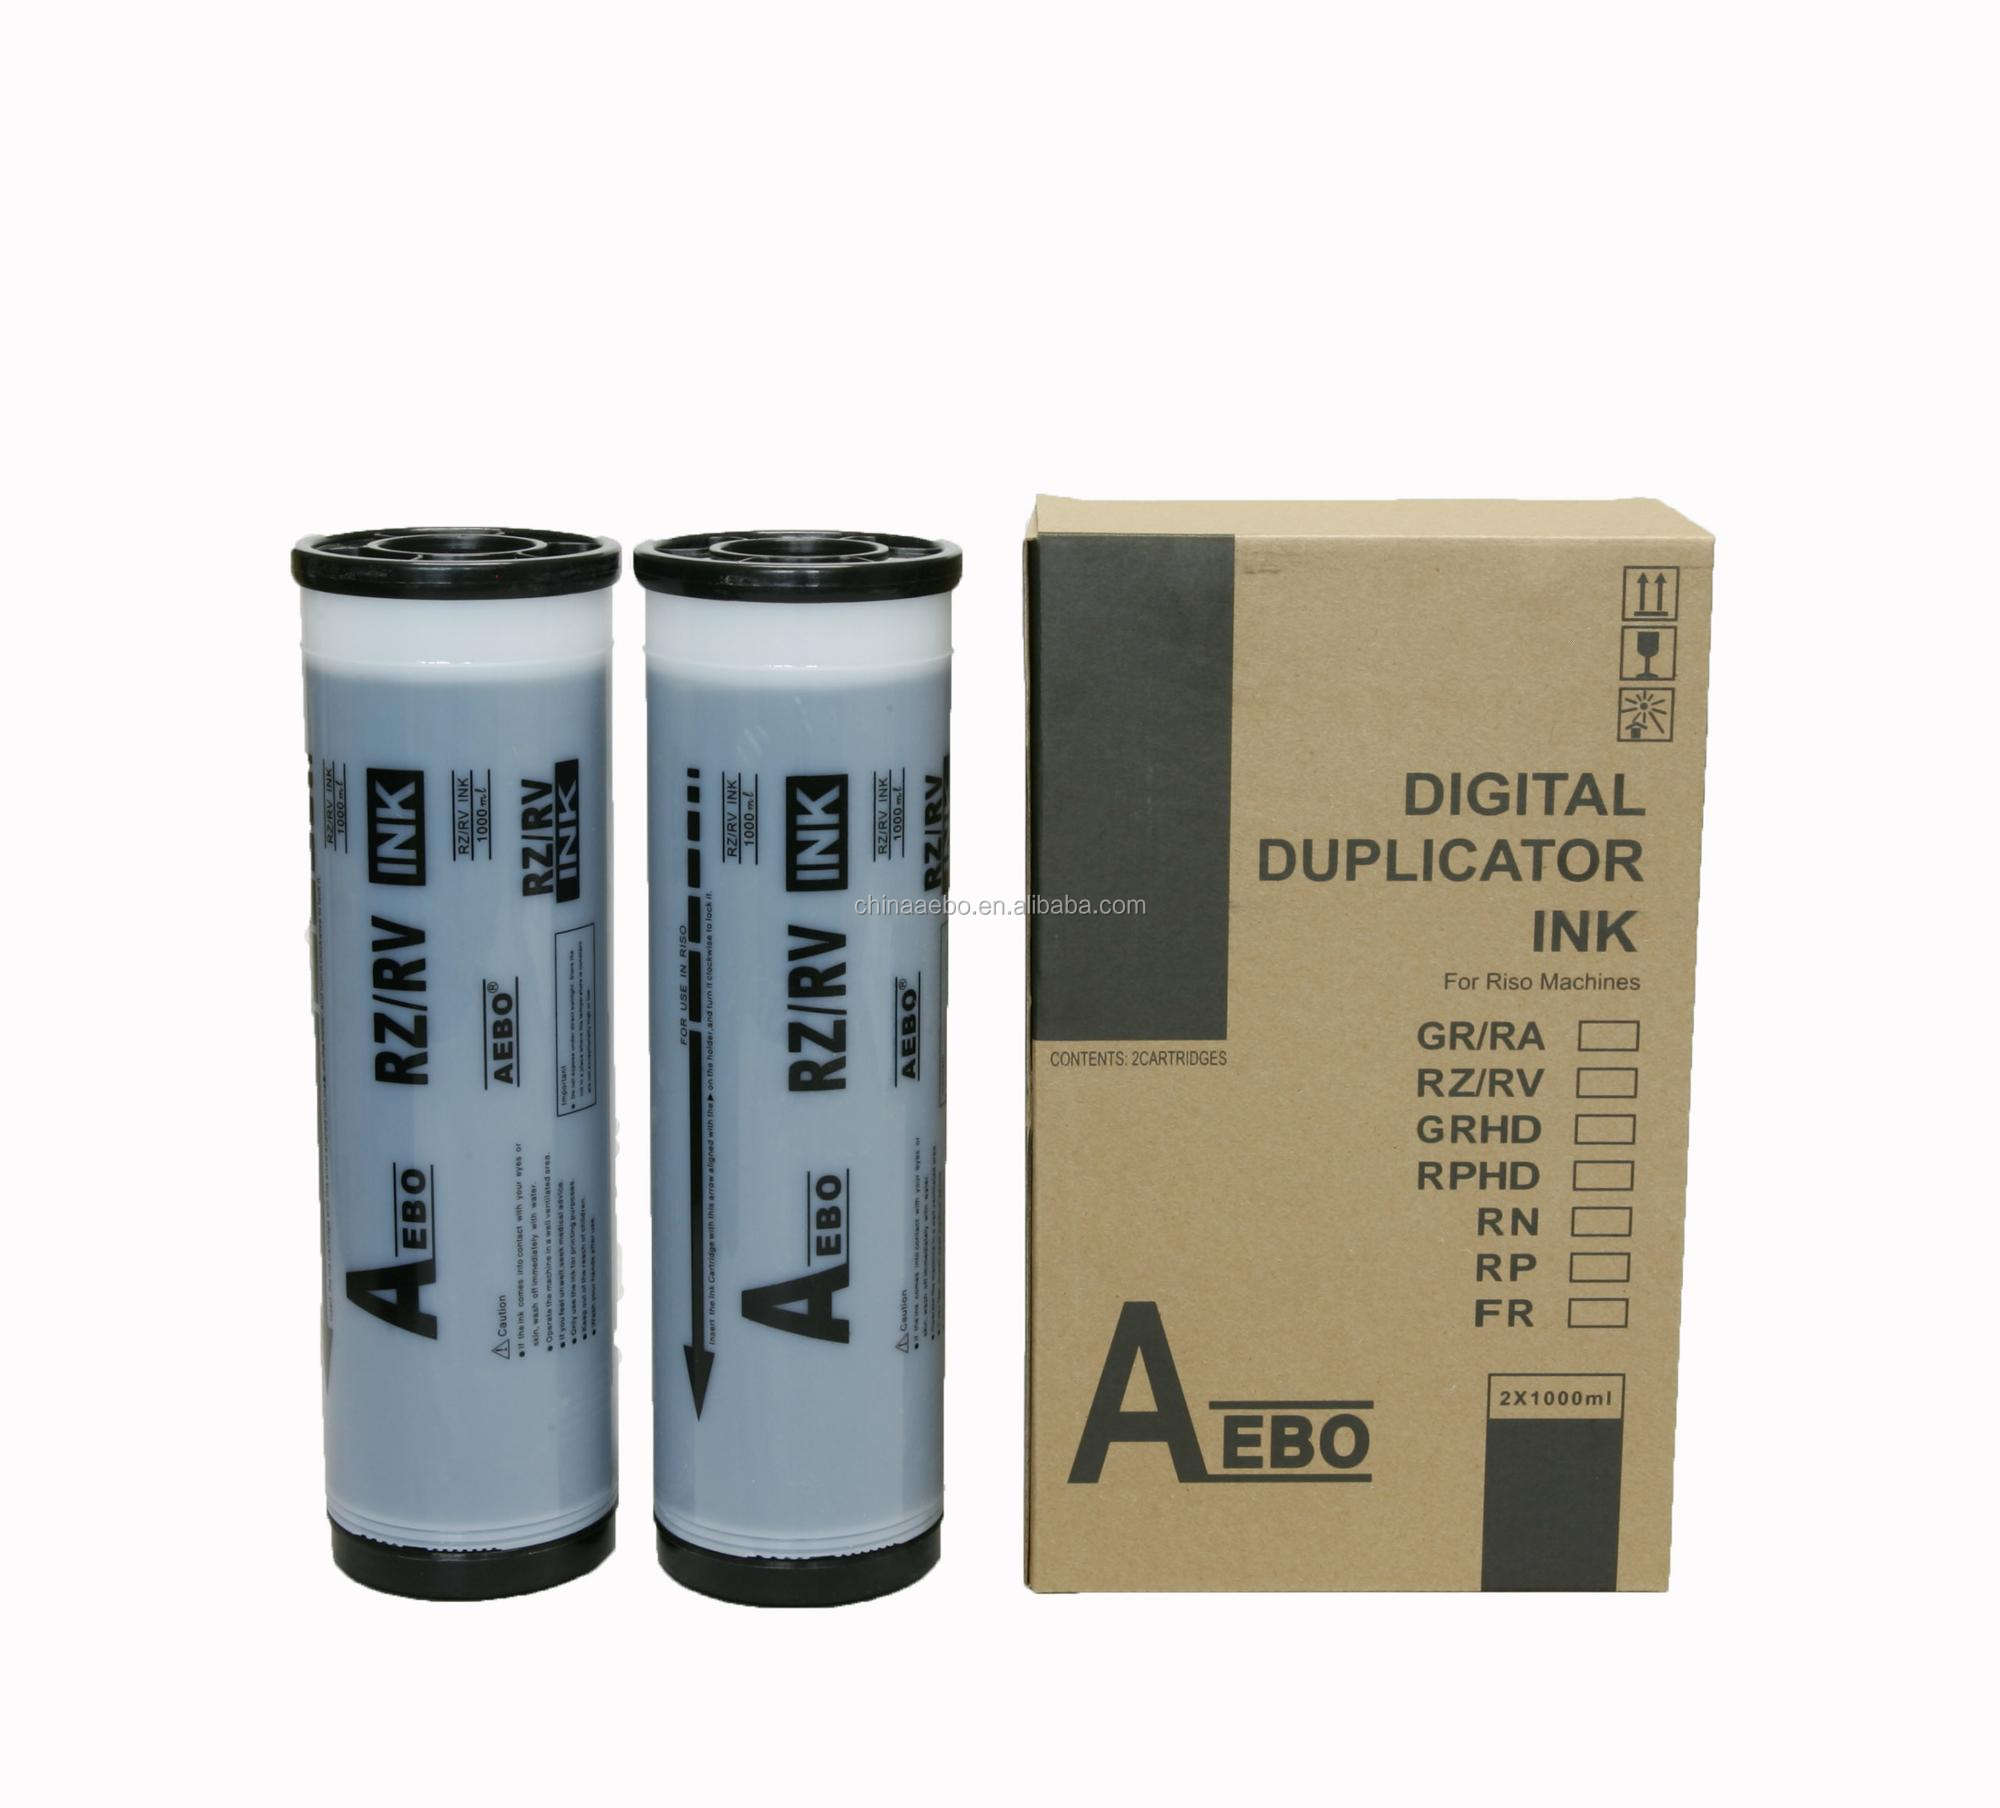 AEBO Compatible RZ/RV/EZ/MZ Digital Duplicator Ink